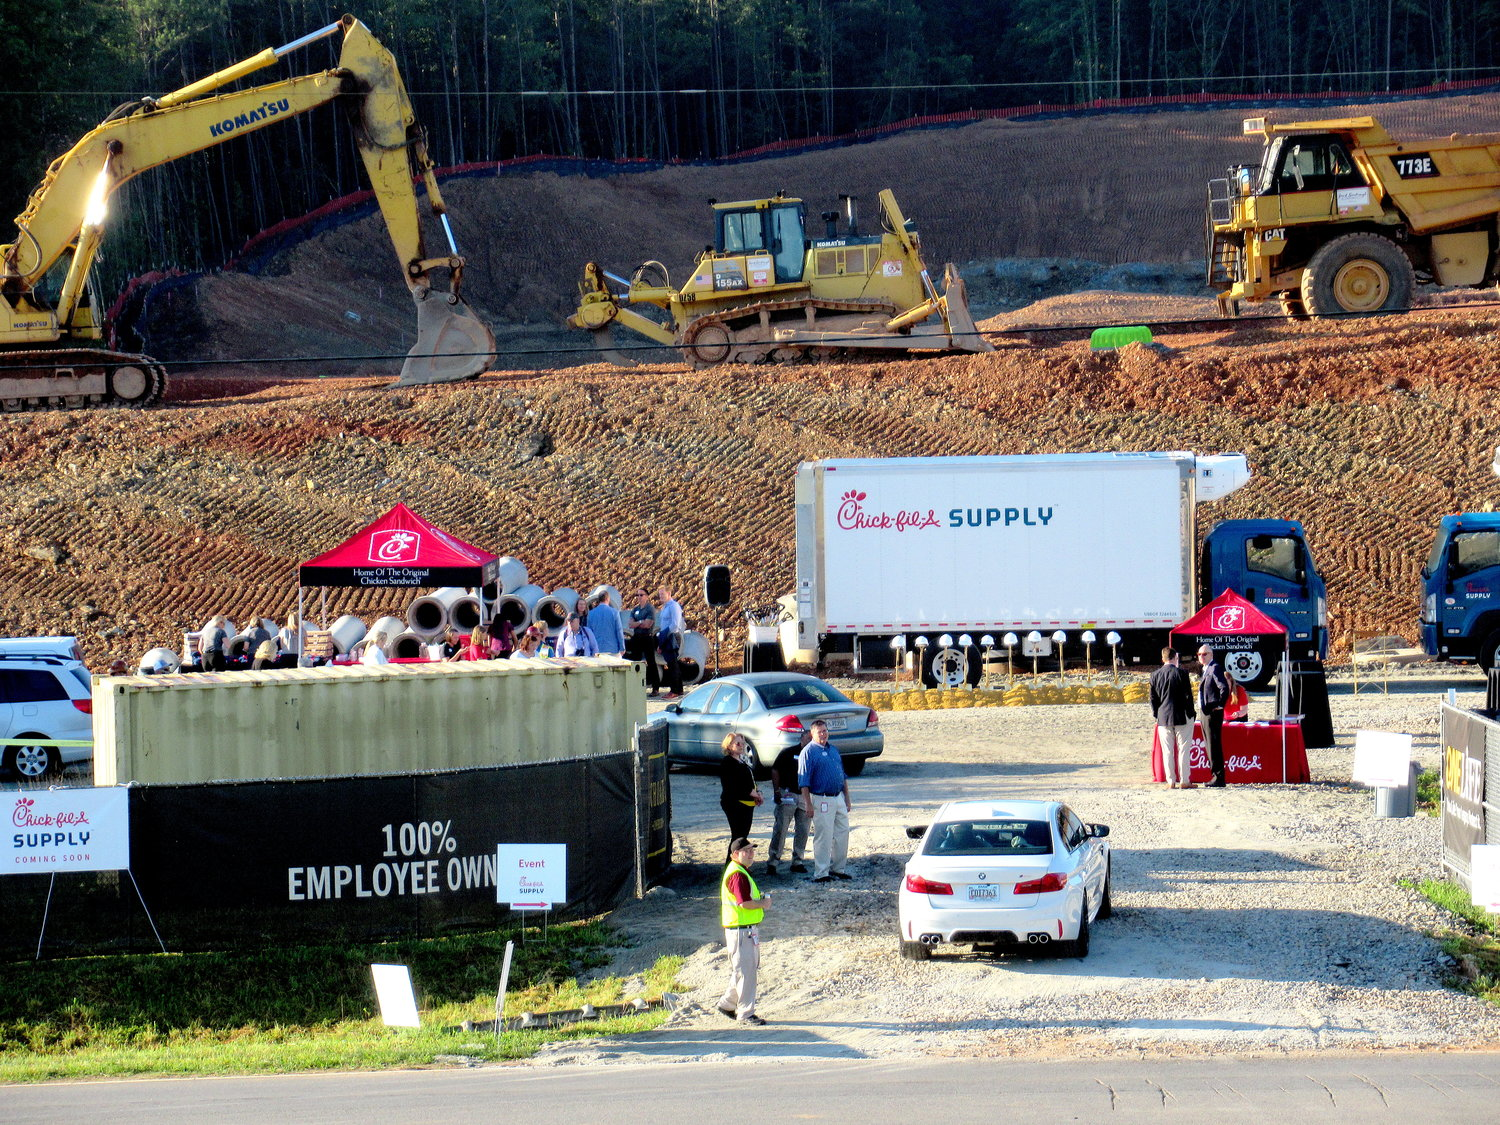 A groundbreaking ceremony for the Chick-fil-A Supply distribution center off Cass-White Road took place Friday morning.